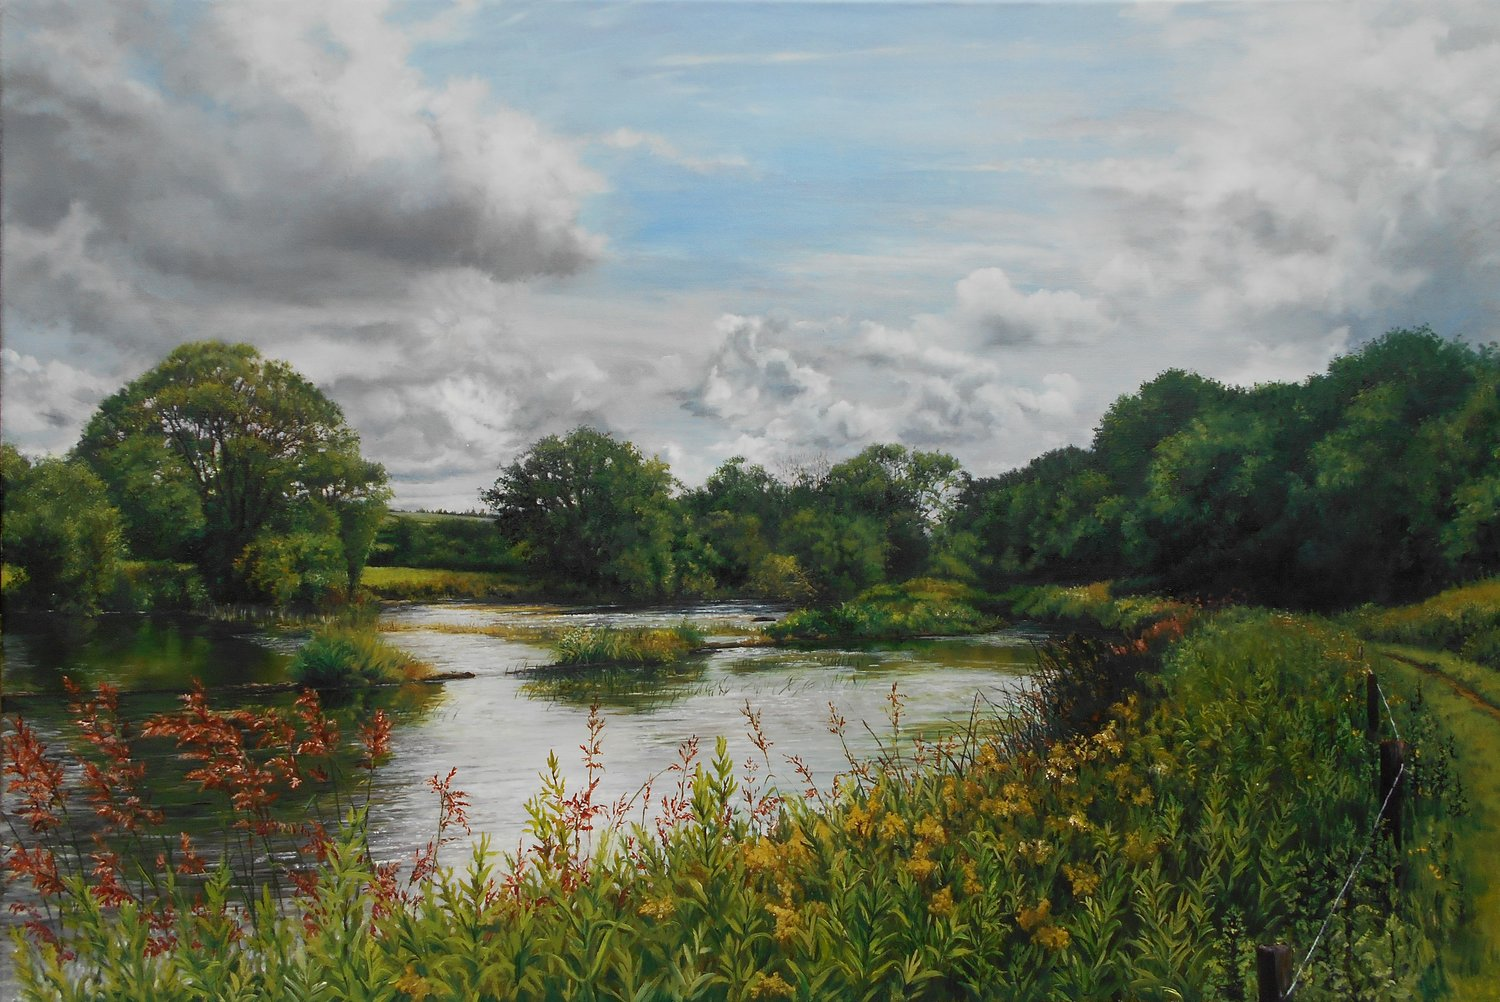 'The weir on the river Suir', Sarah Corner, Oil on linen canvas, 50 x 76 x 2 cm